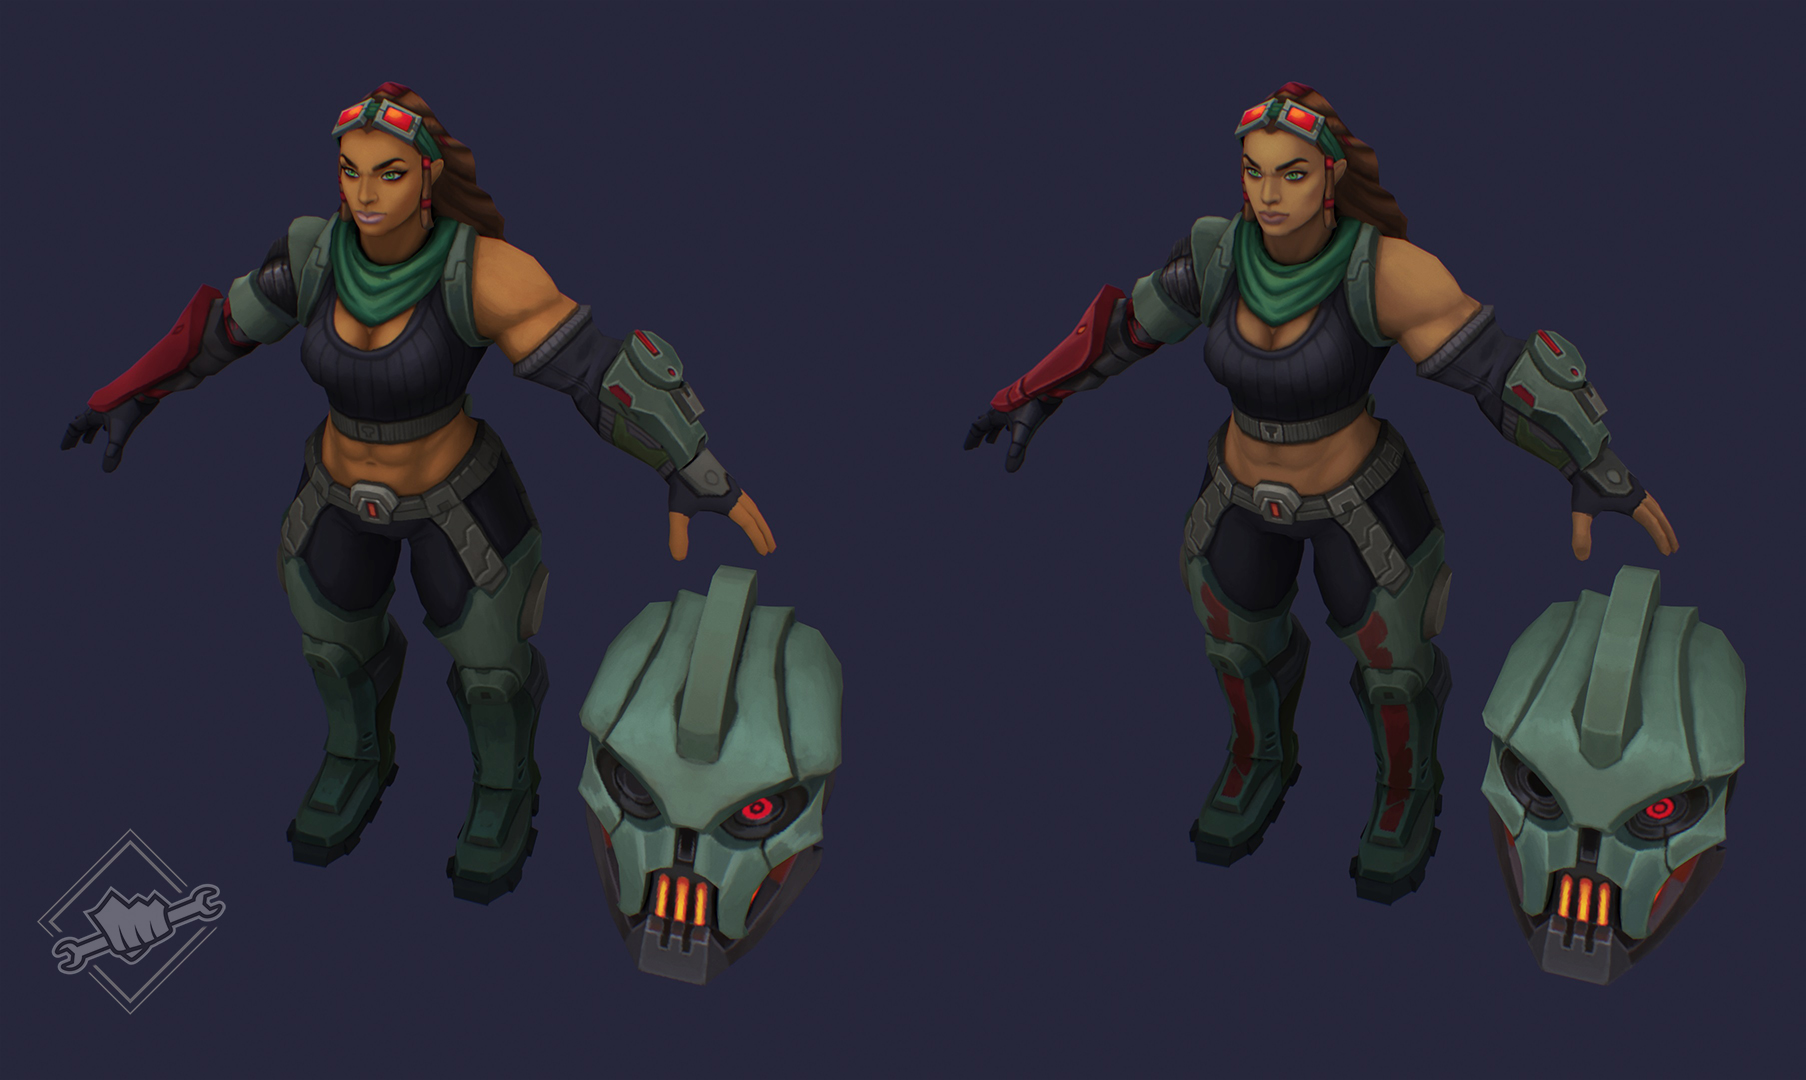 Our first paintover was a little off, so we adjusted her skin tone to be closer to base Illaoi.